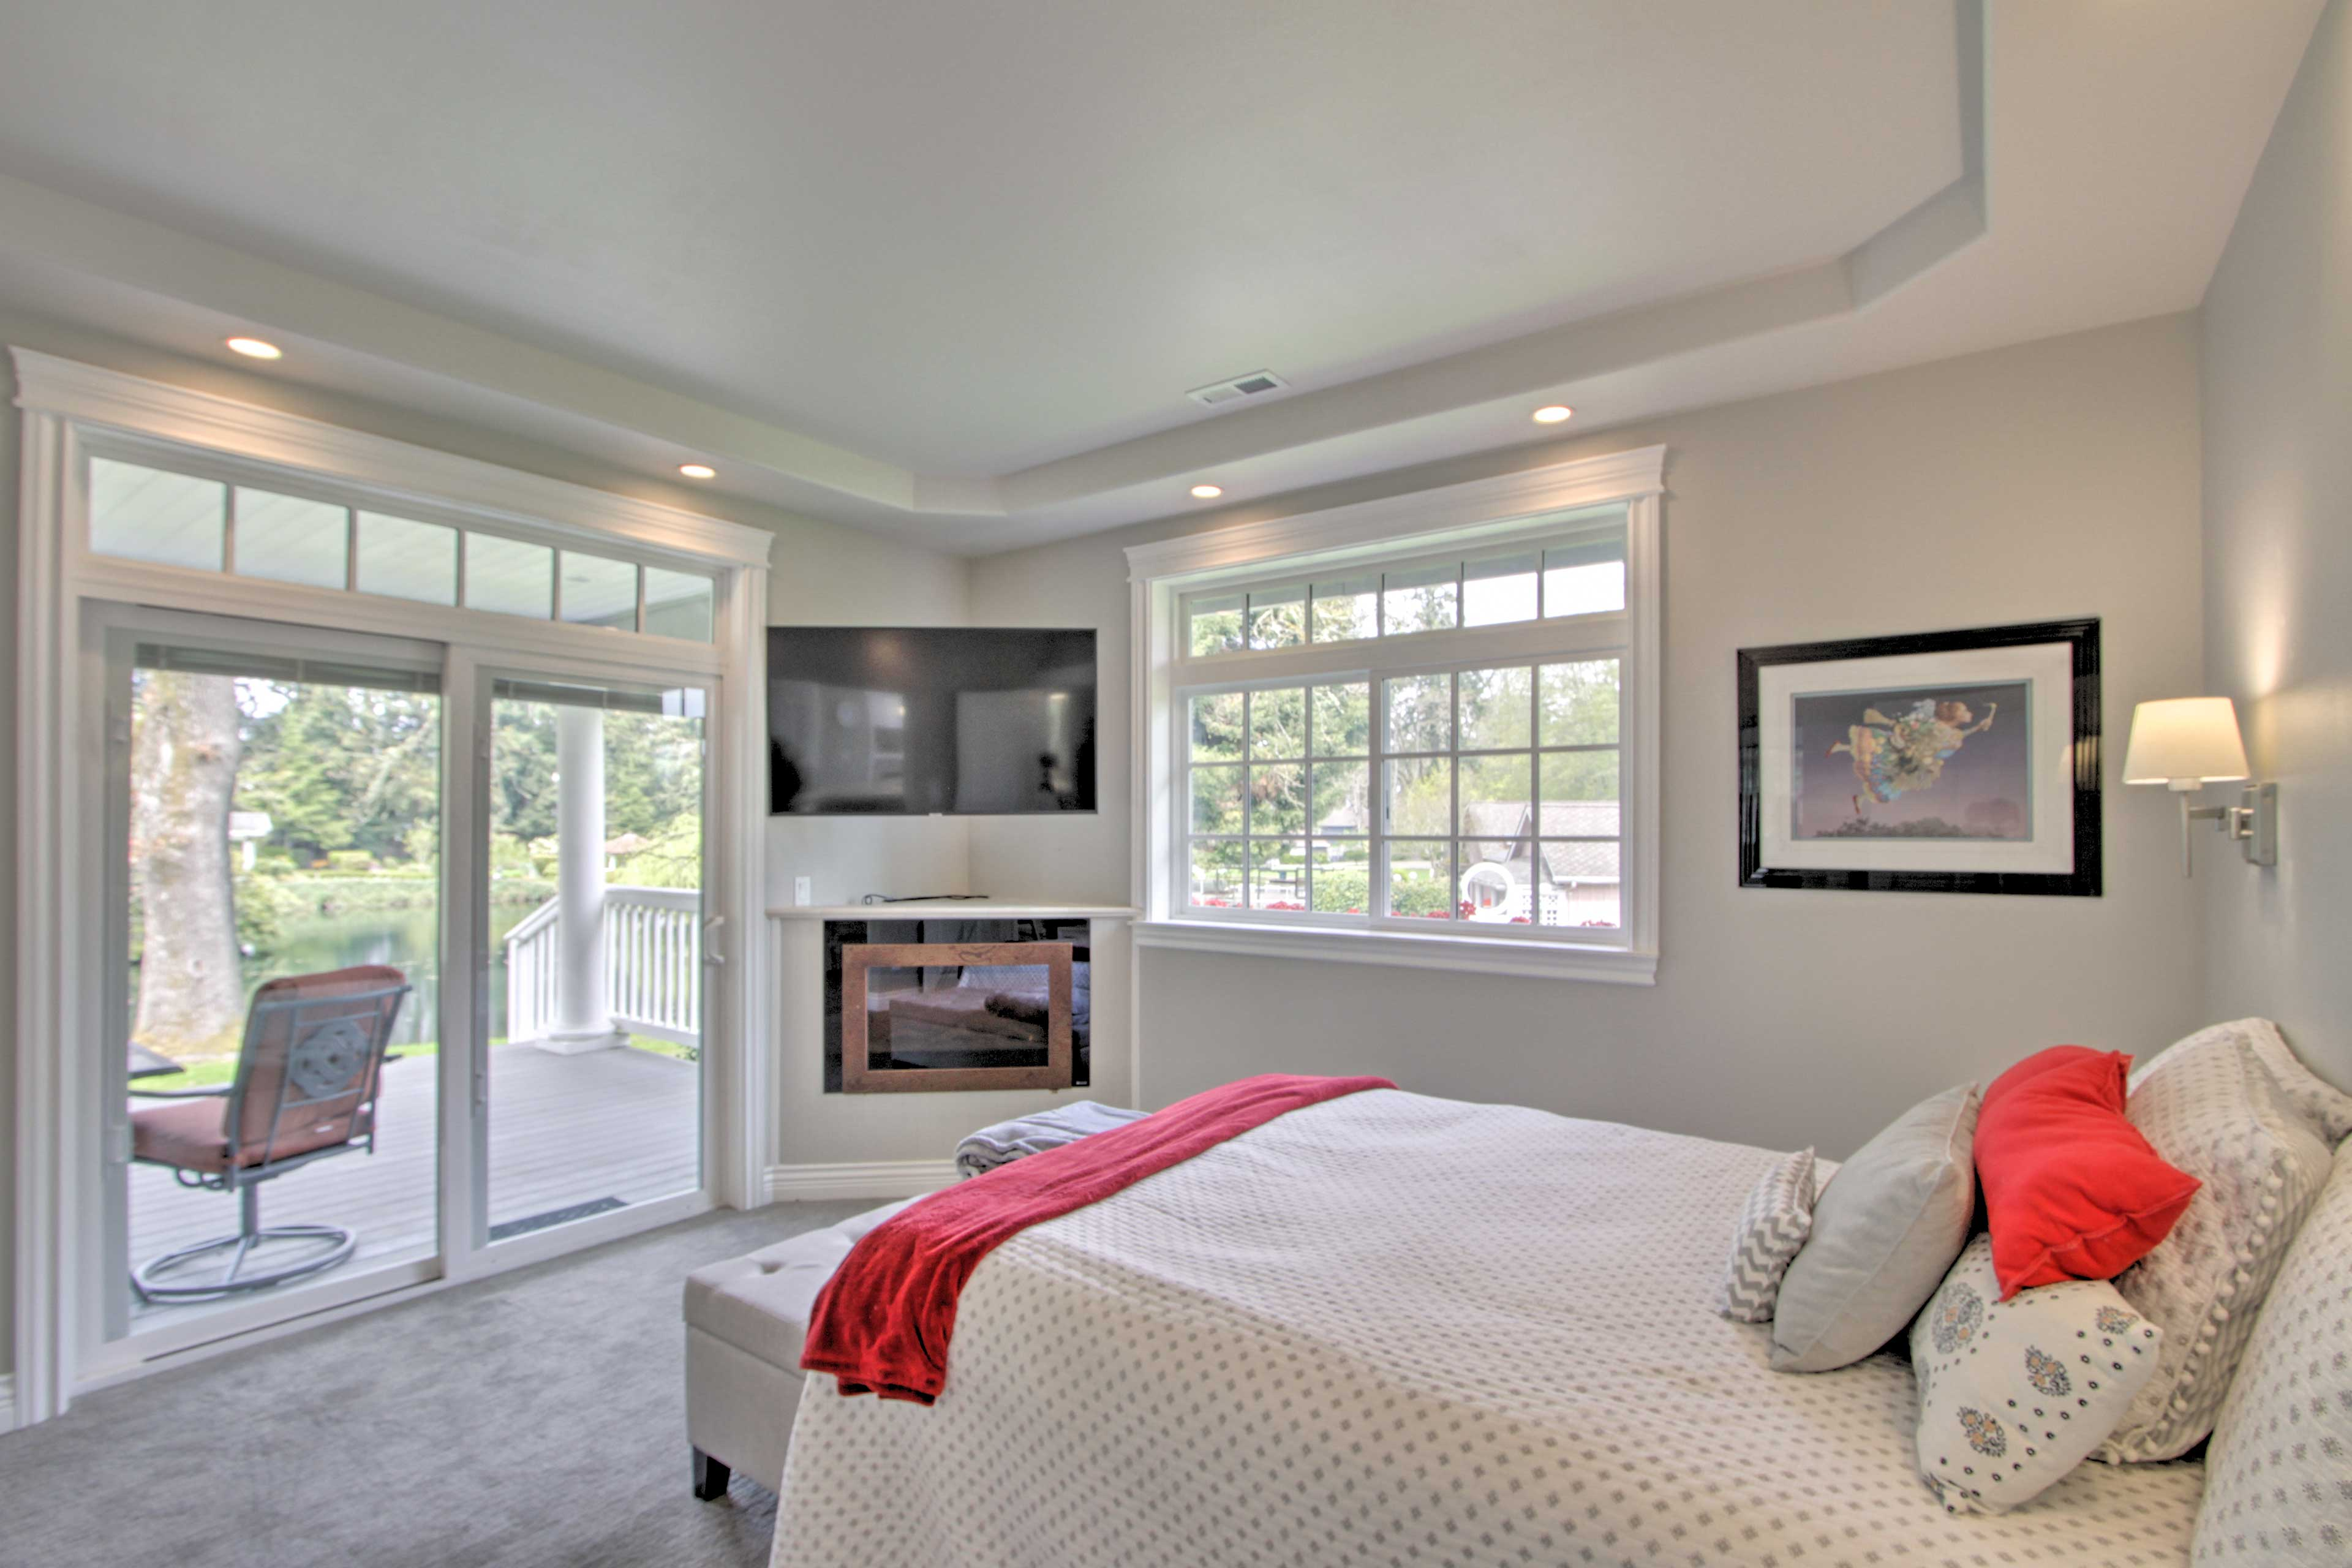 The master bedroom features an electric fireplace.